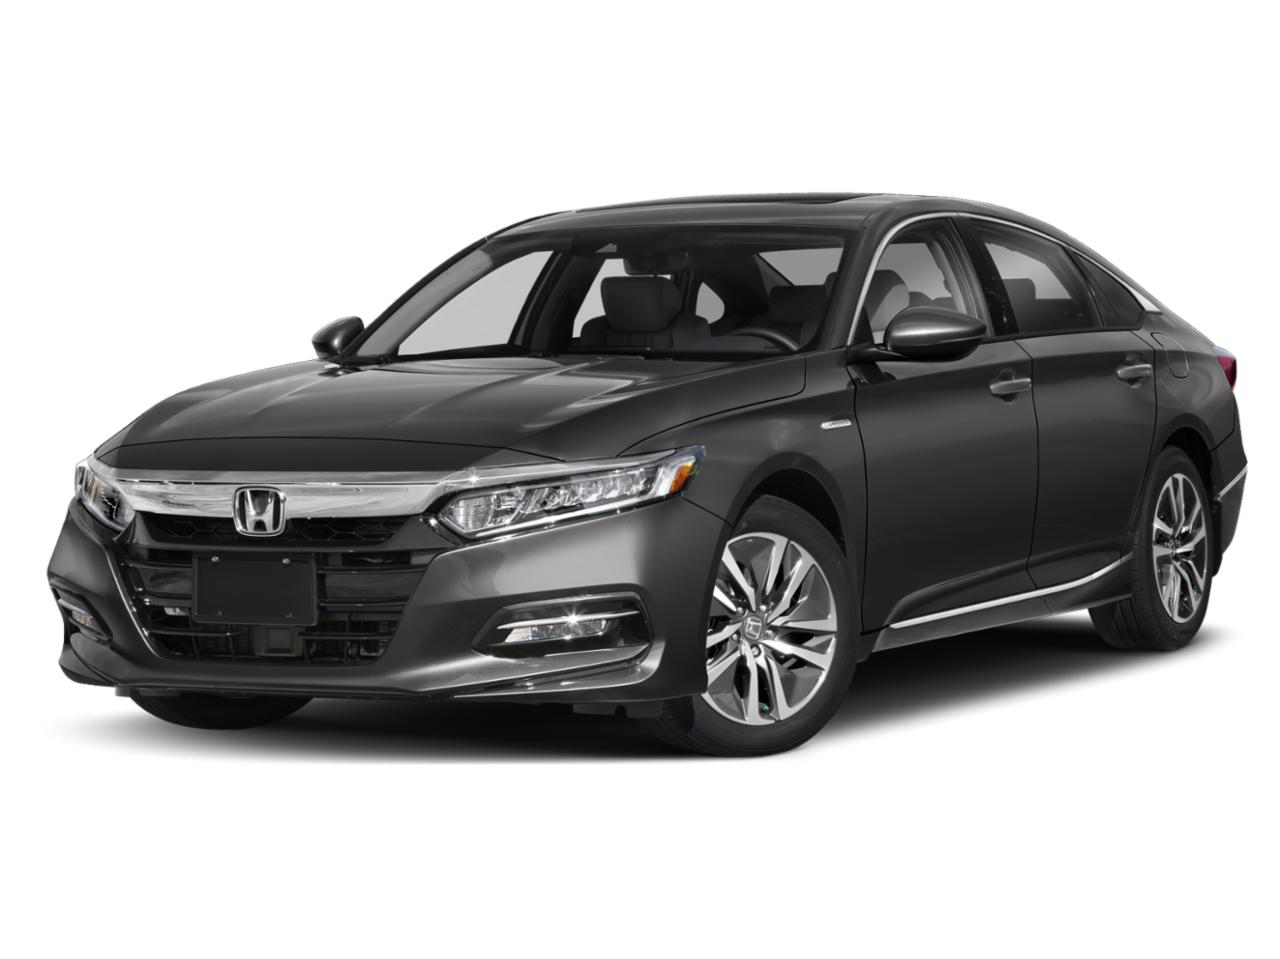 2019 Honda Accord Hybrid Vehicle Photo in Oklahoma City, OK 73131